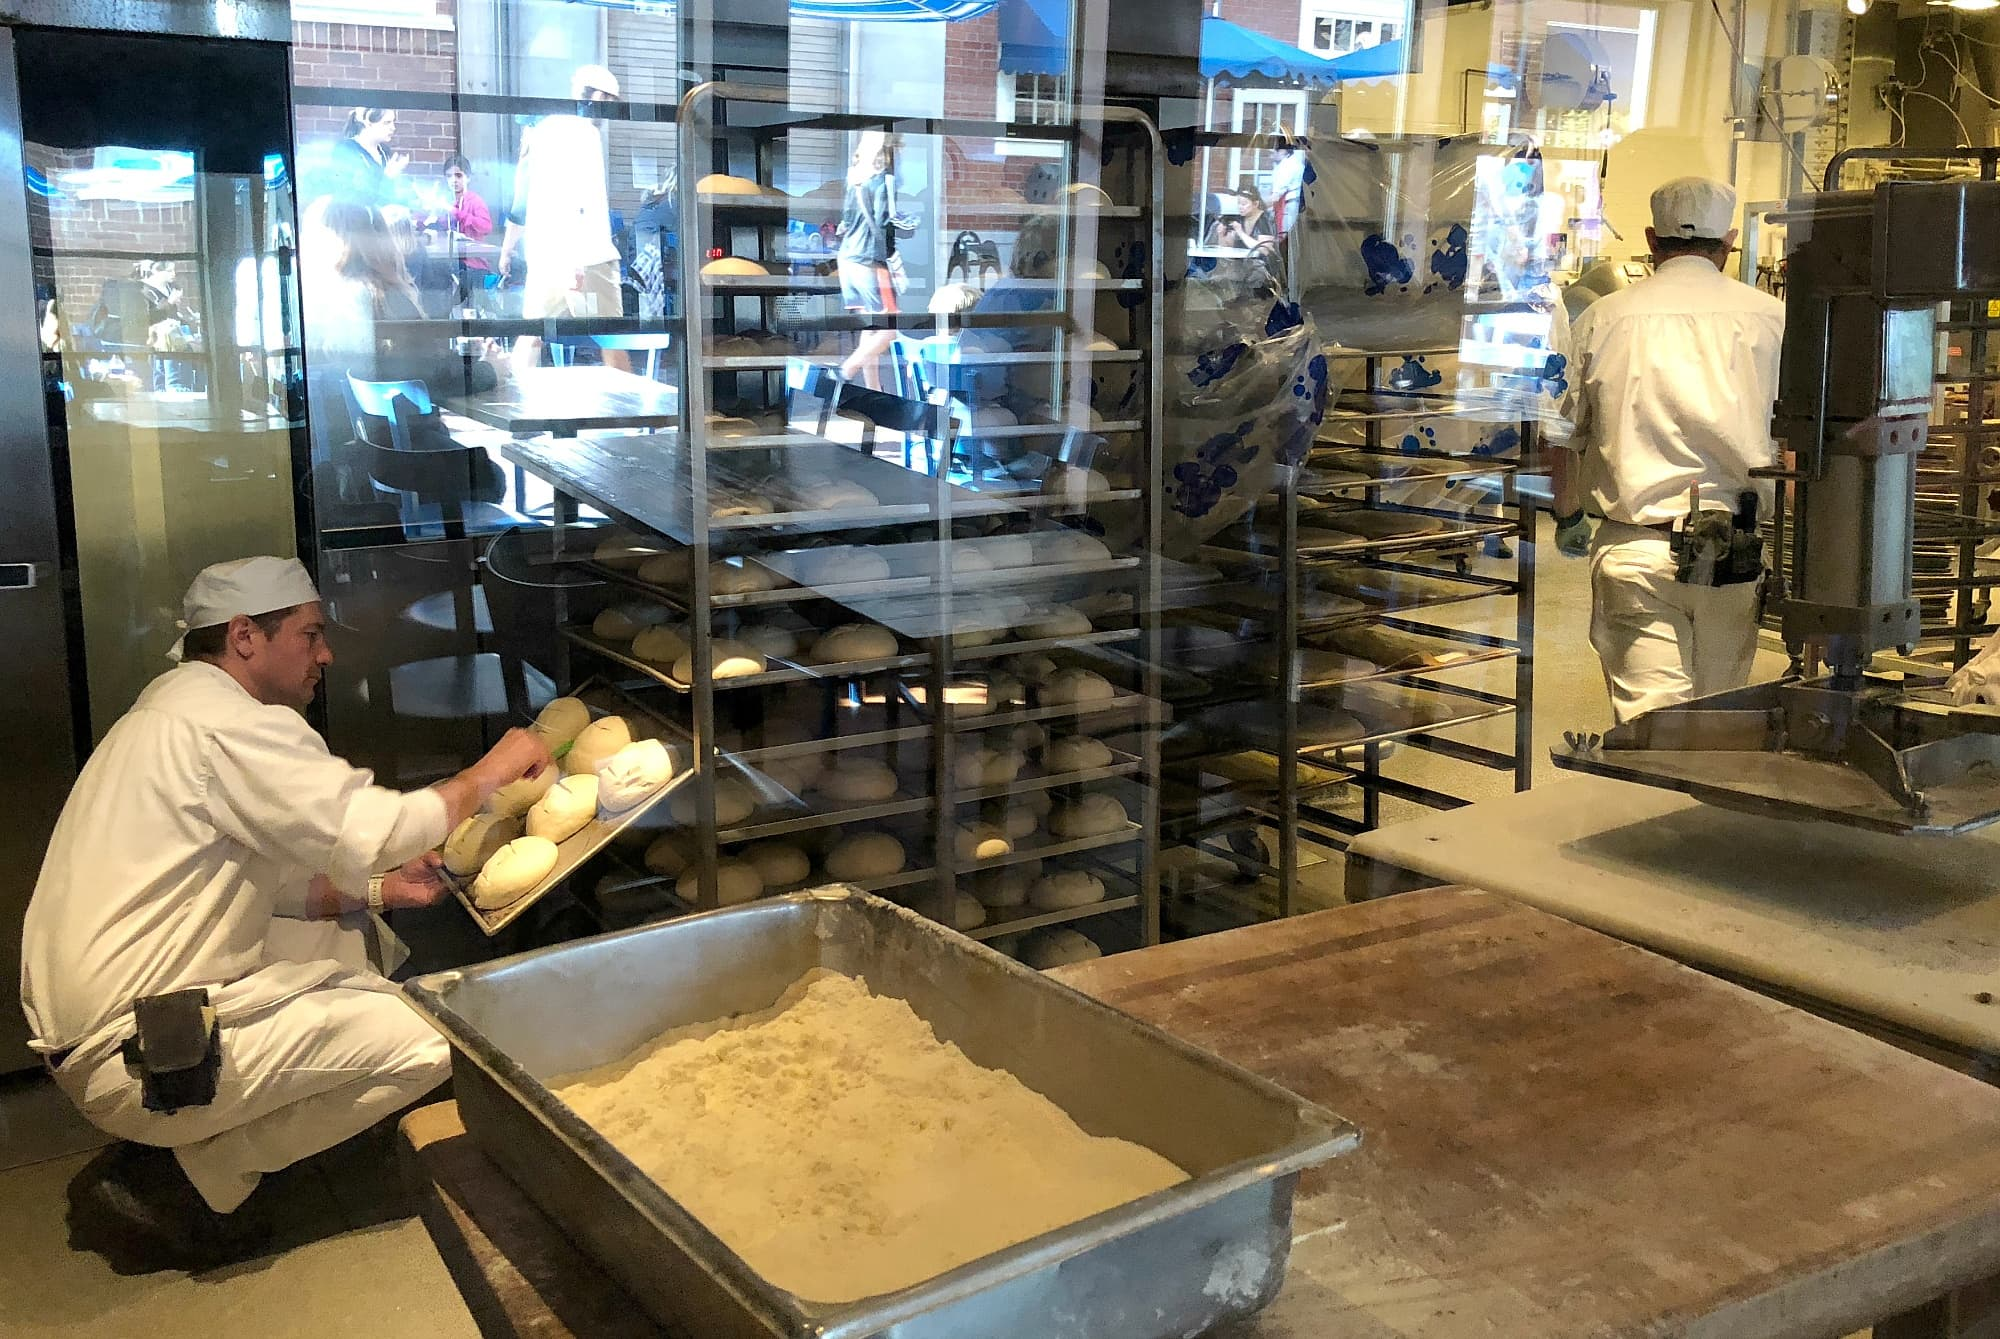 Watch the process of sourdough bread baking at the Boudin Bakery Tour ~ Educational Things to Do at Disneyland with Kids